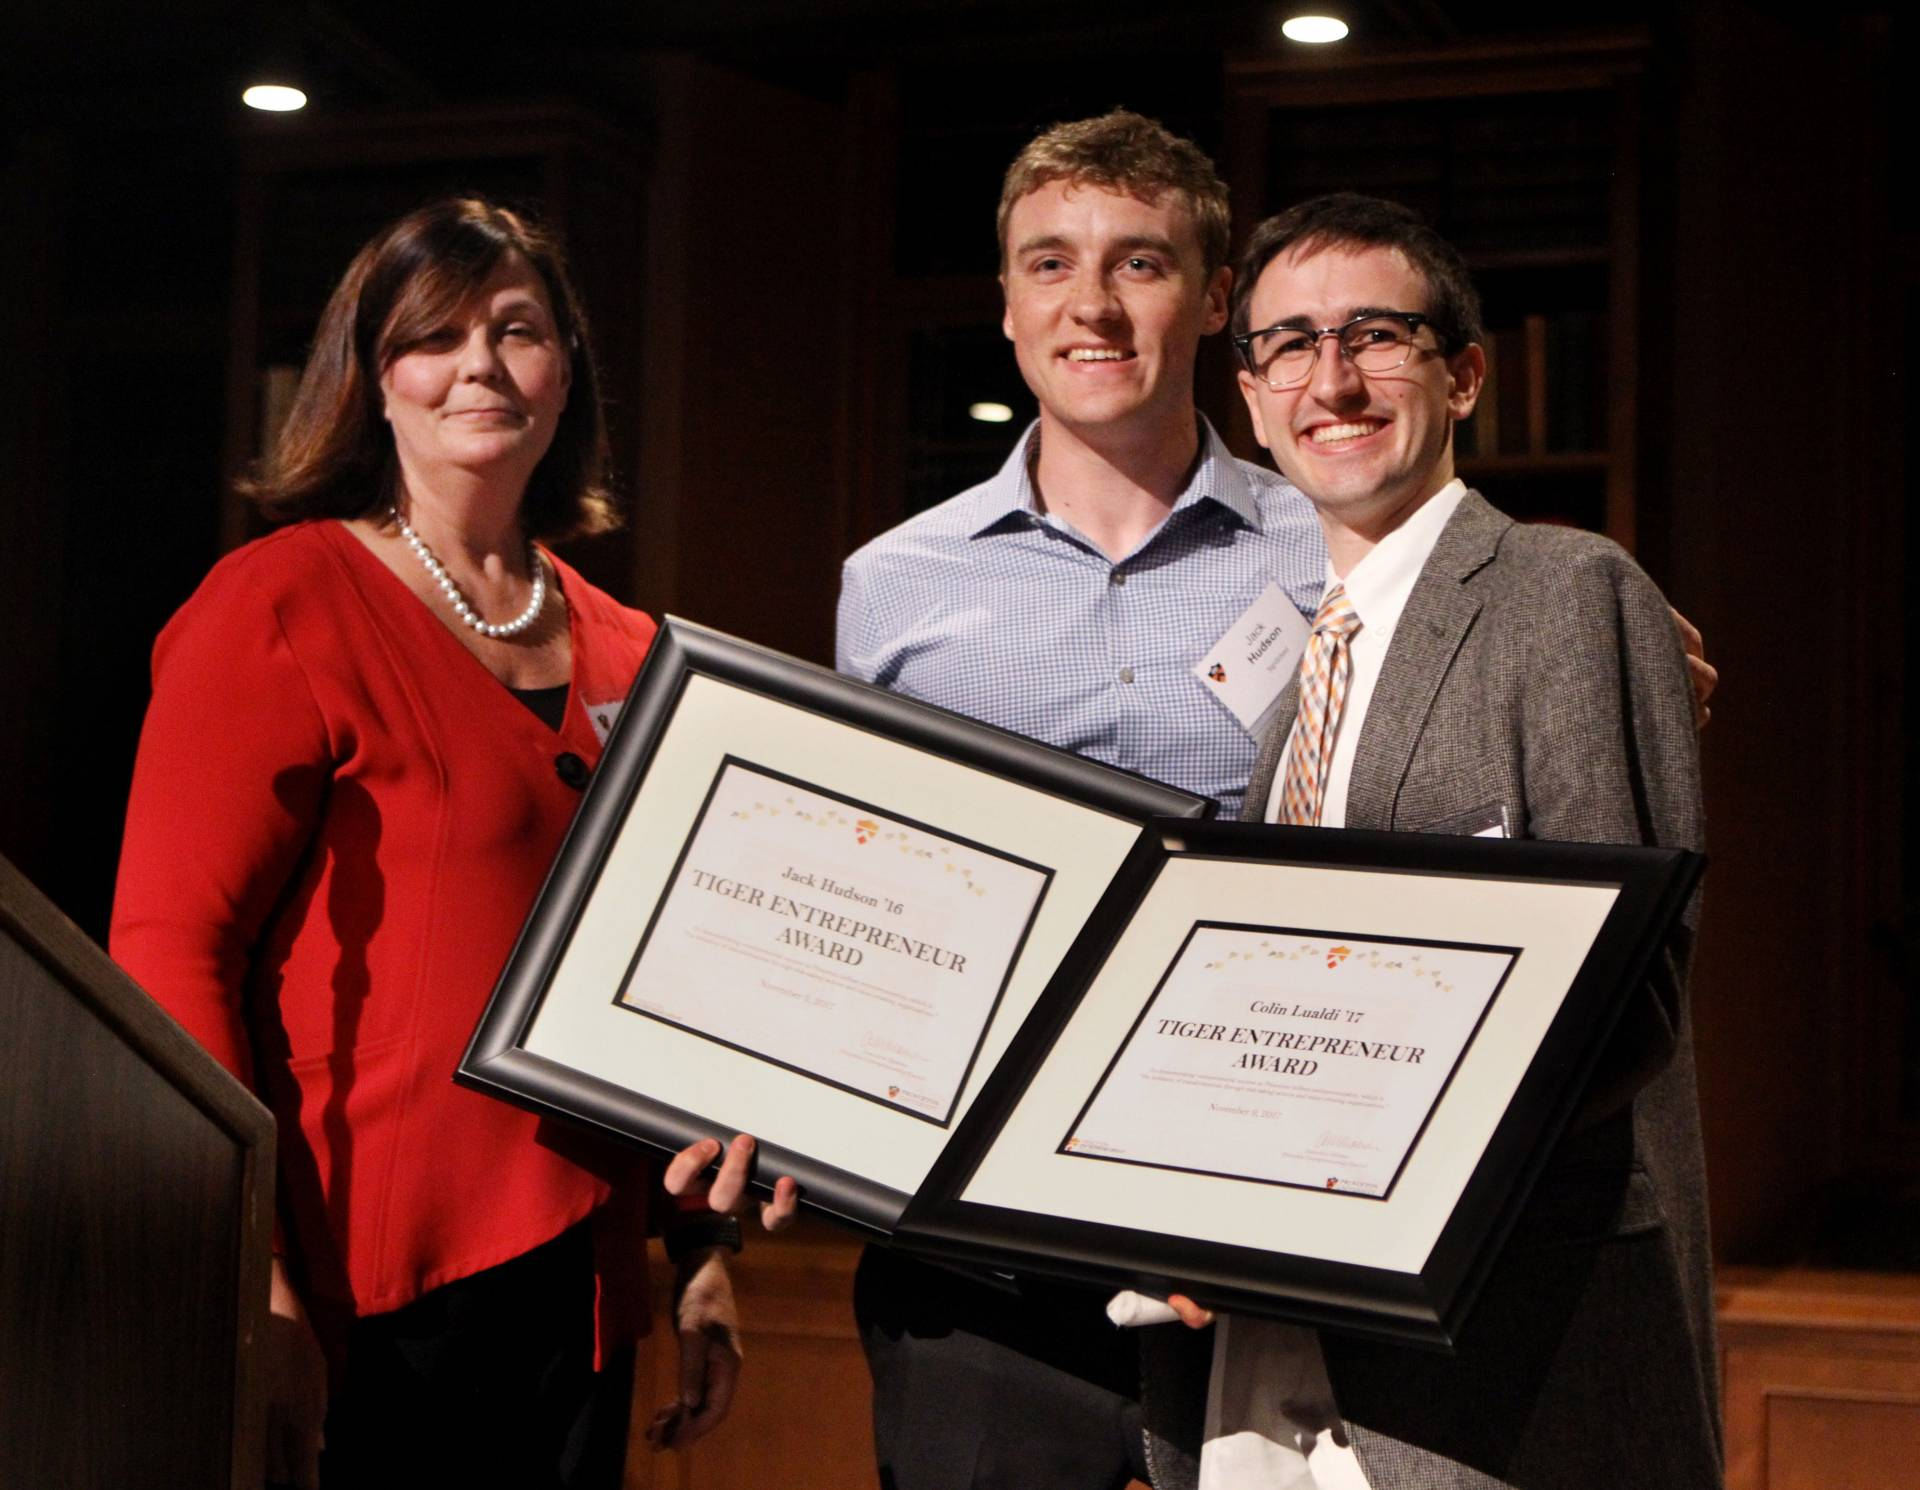 Anne-Marie Maman with princeton student award winners Jack Hudson and Colin Lualdi